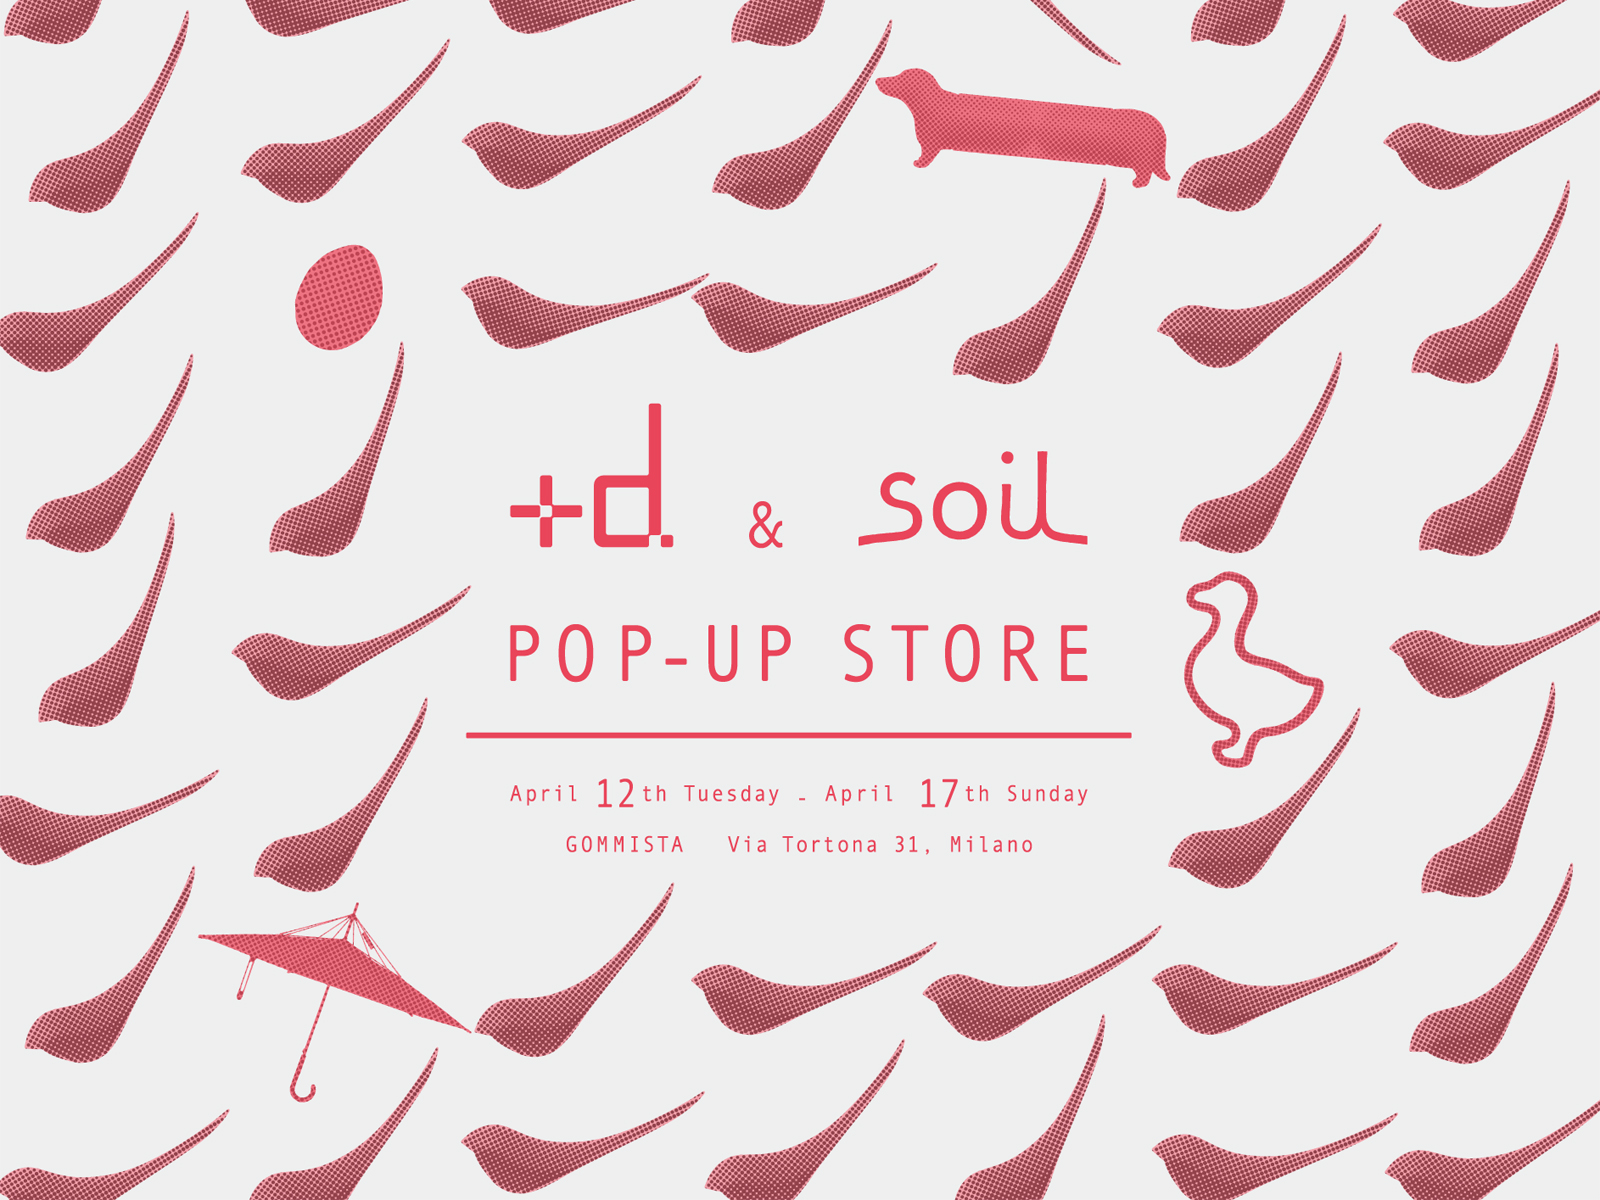 FUORISALONE 2016 - POP-UP STORE